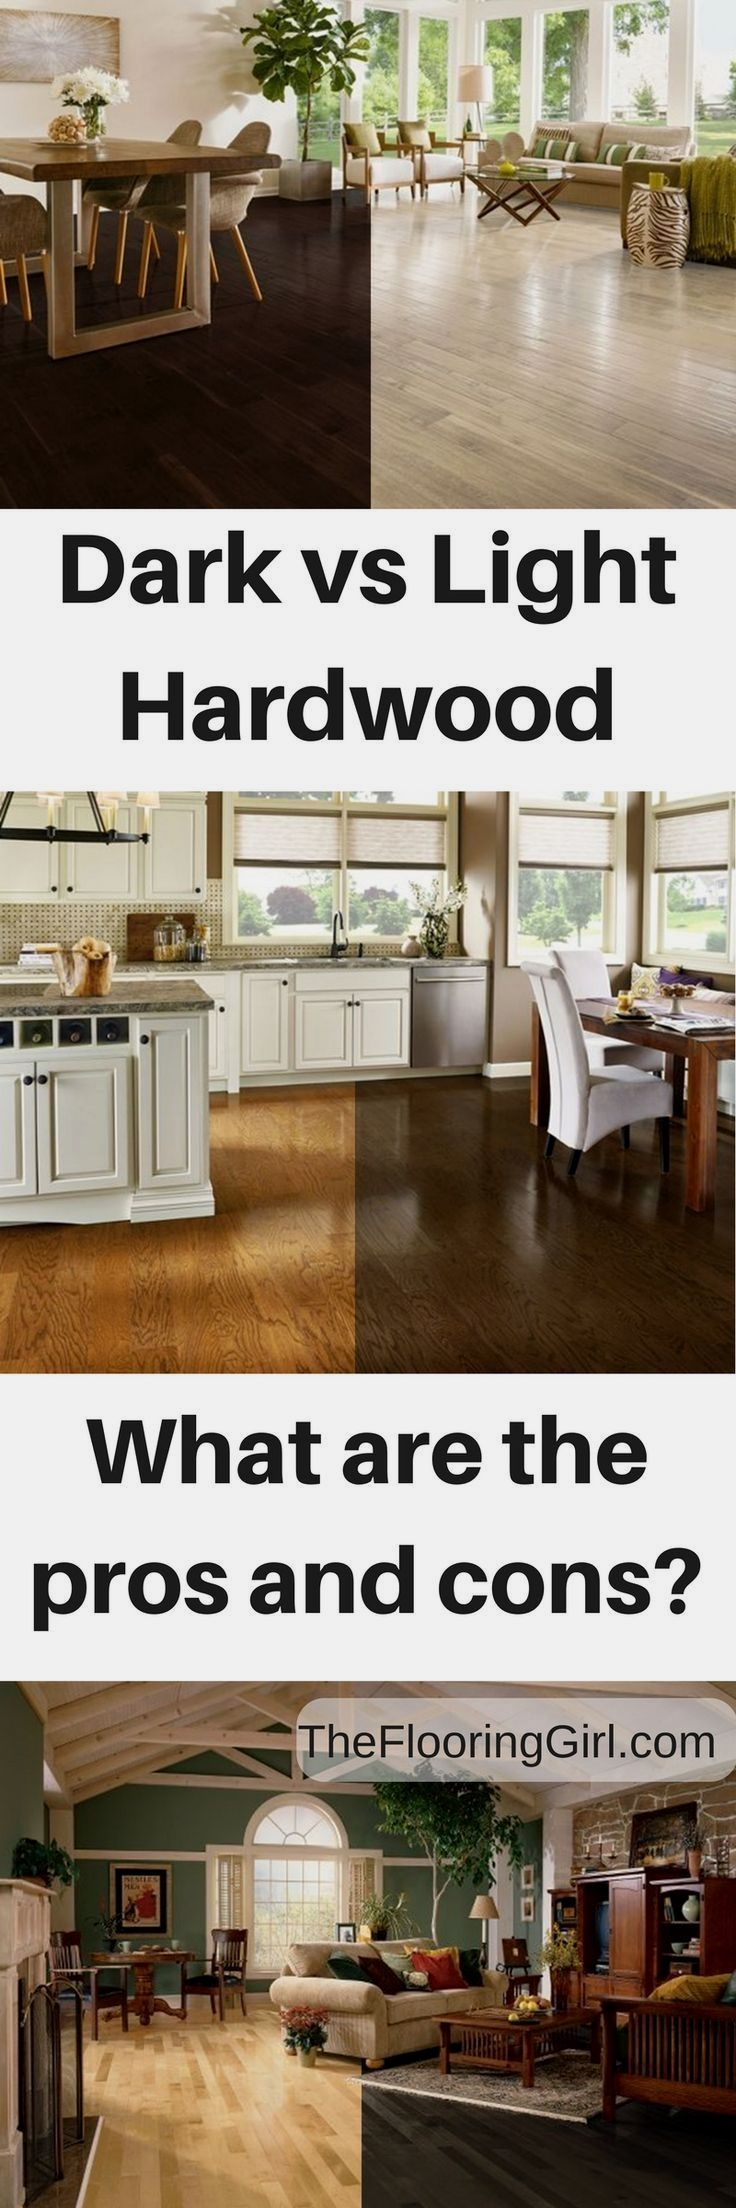 Dark vs Light hardwood floors. What are the pros and cons